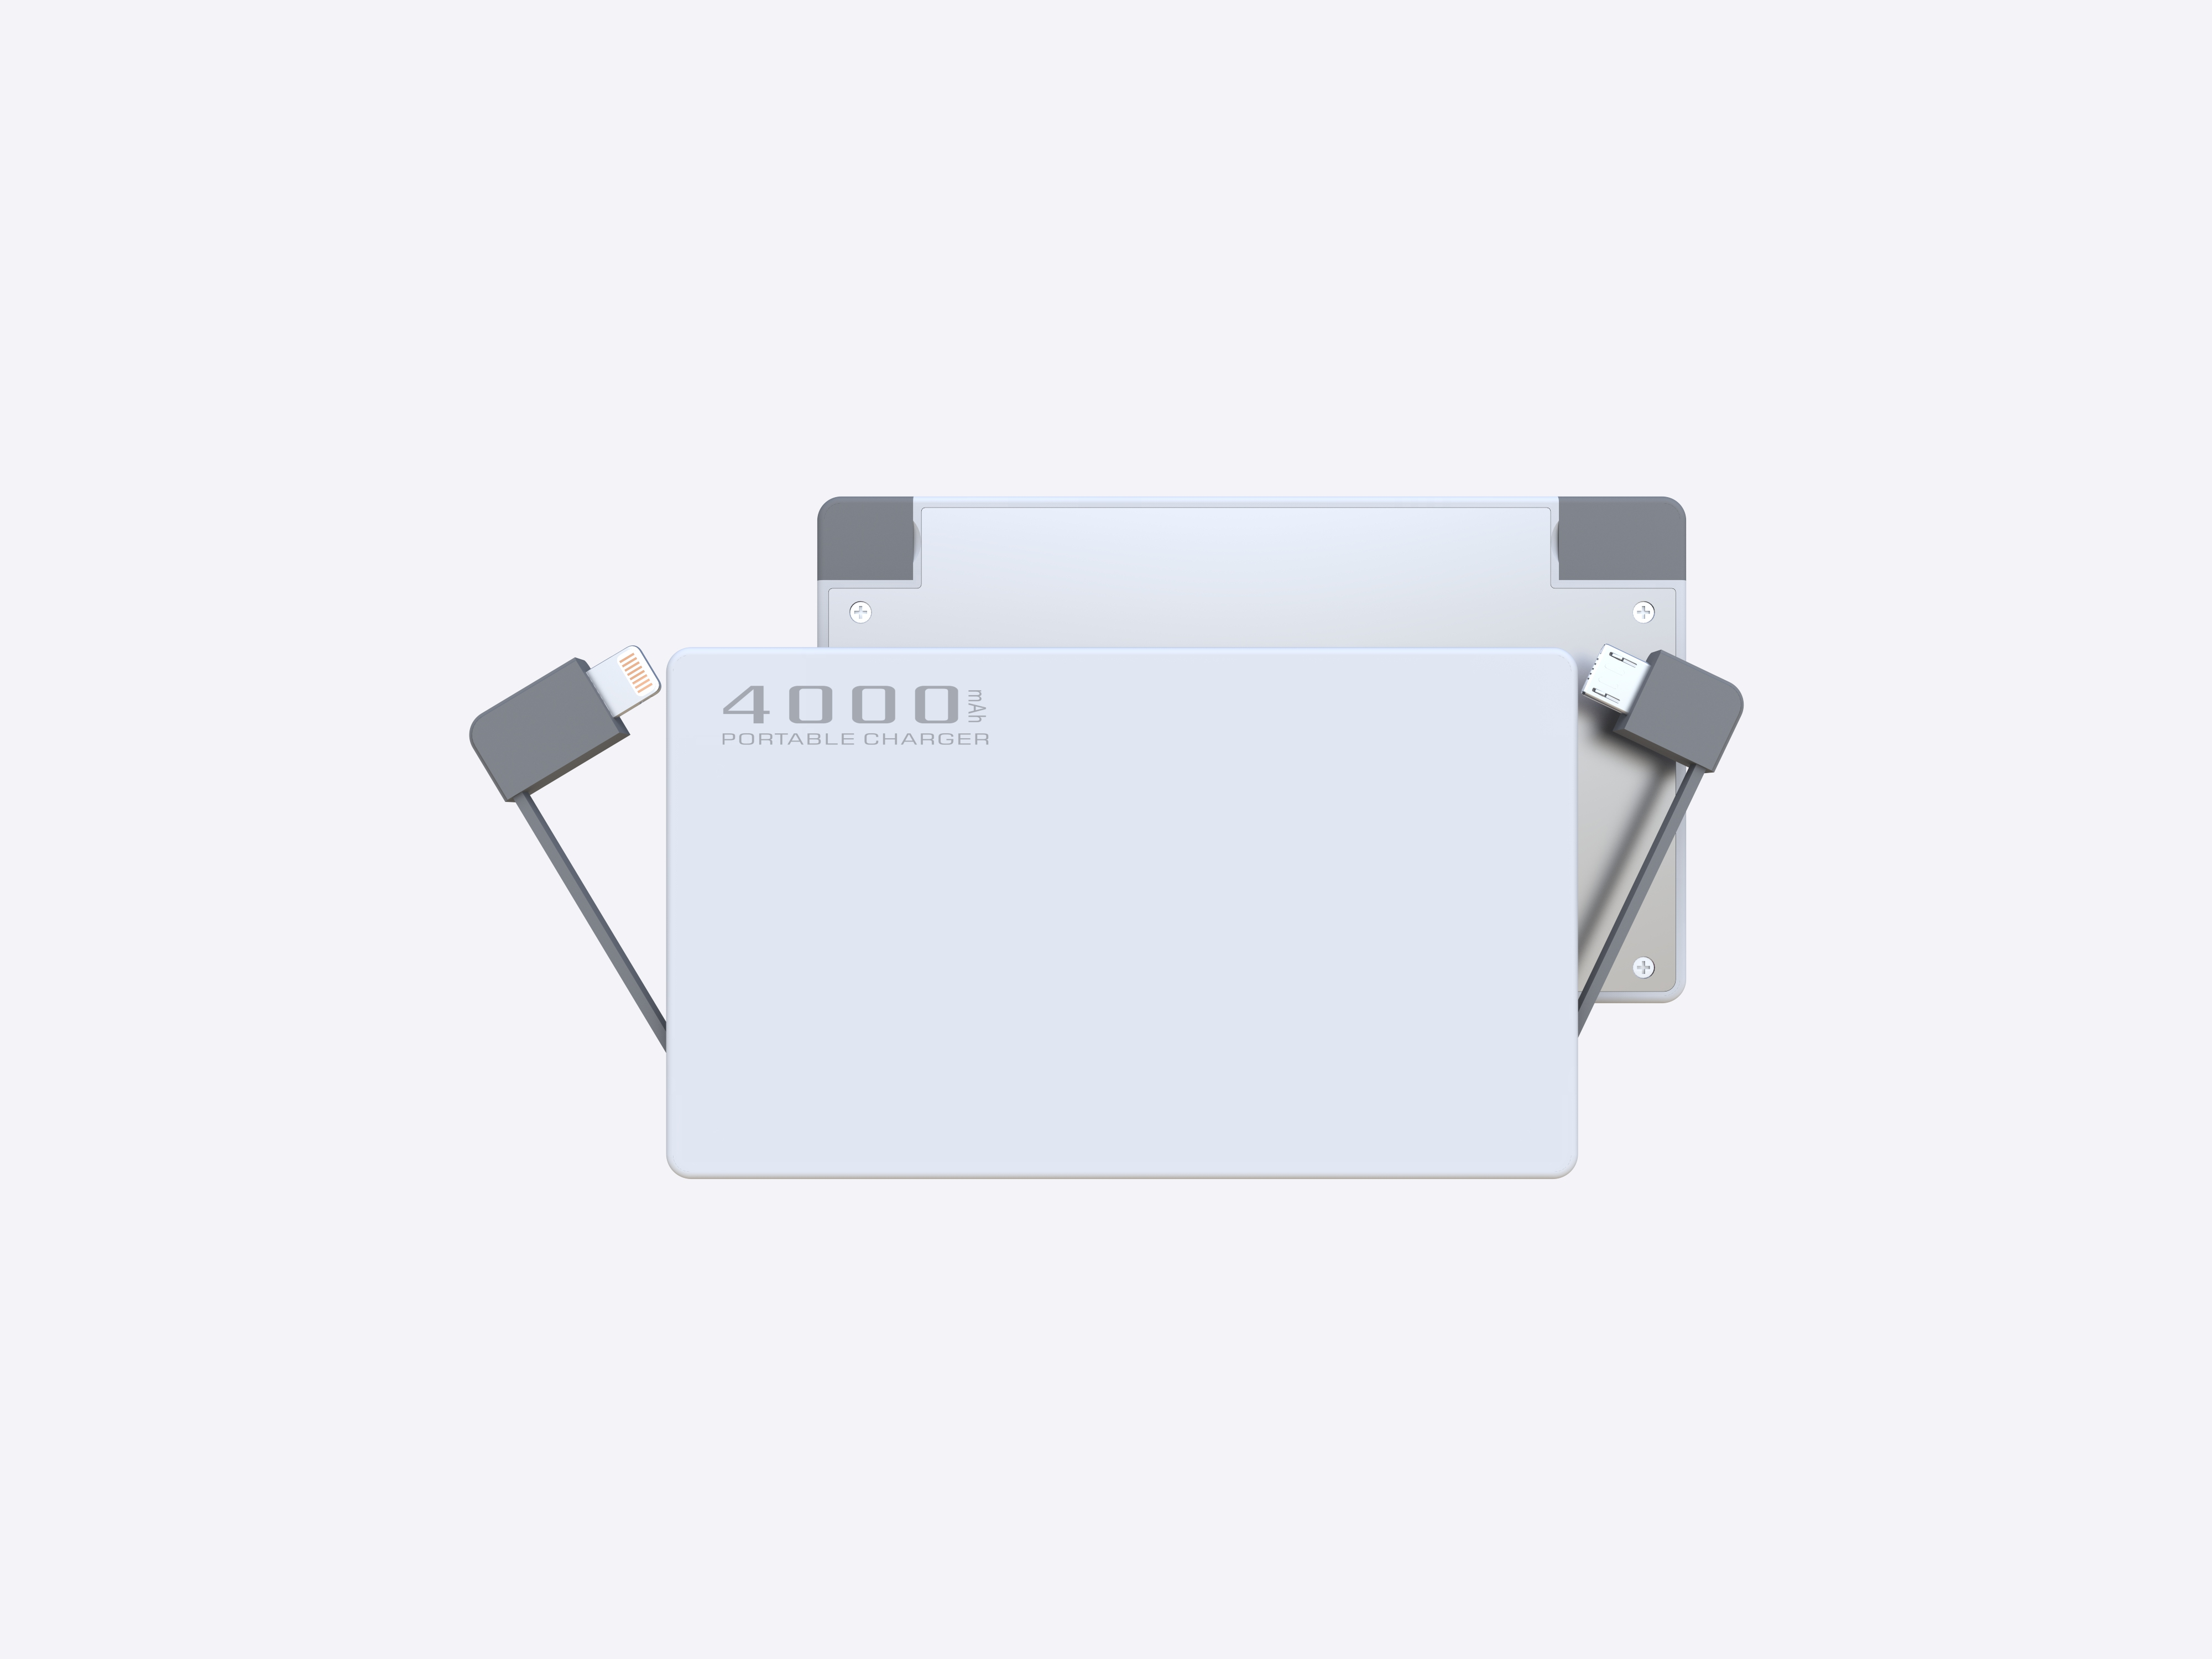 hot 2016 rechargeable power bank portable source 4000mah slim mobile power bank charger credit card